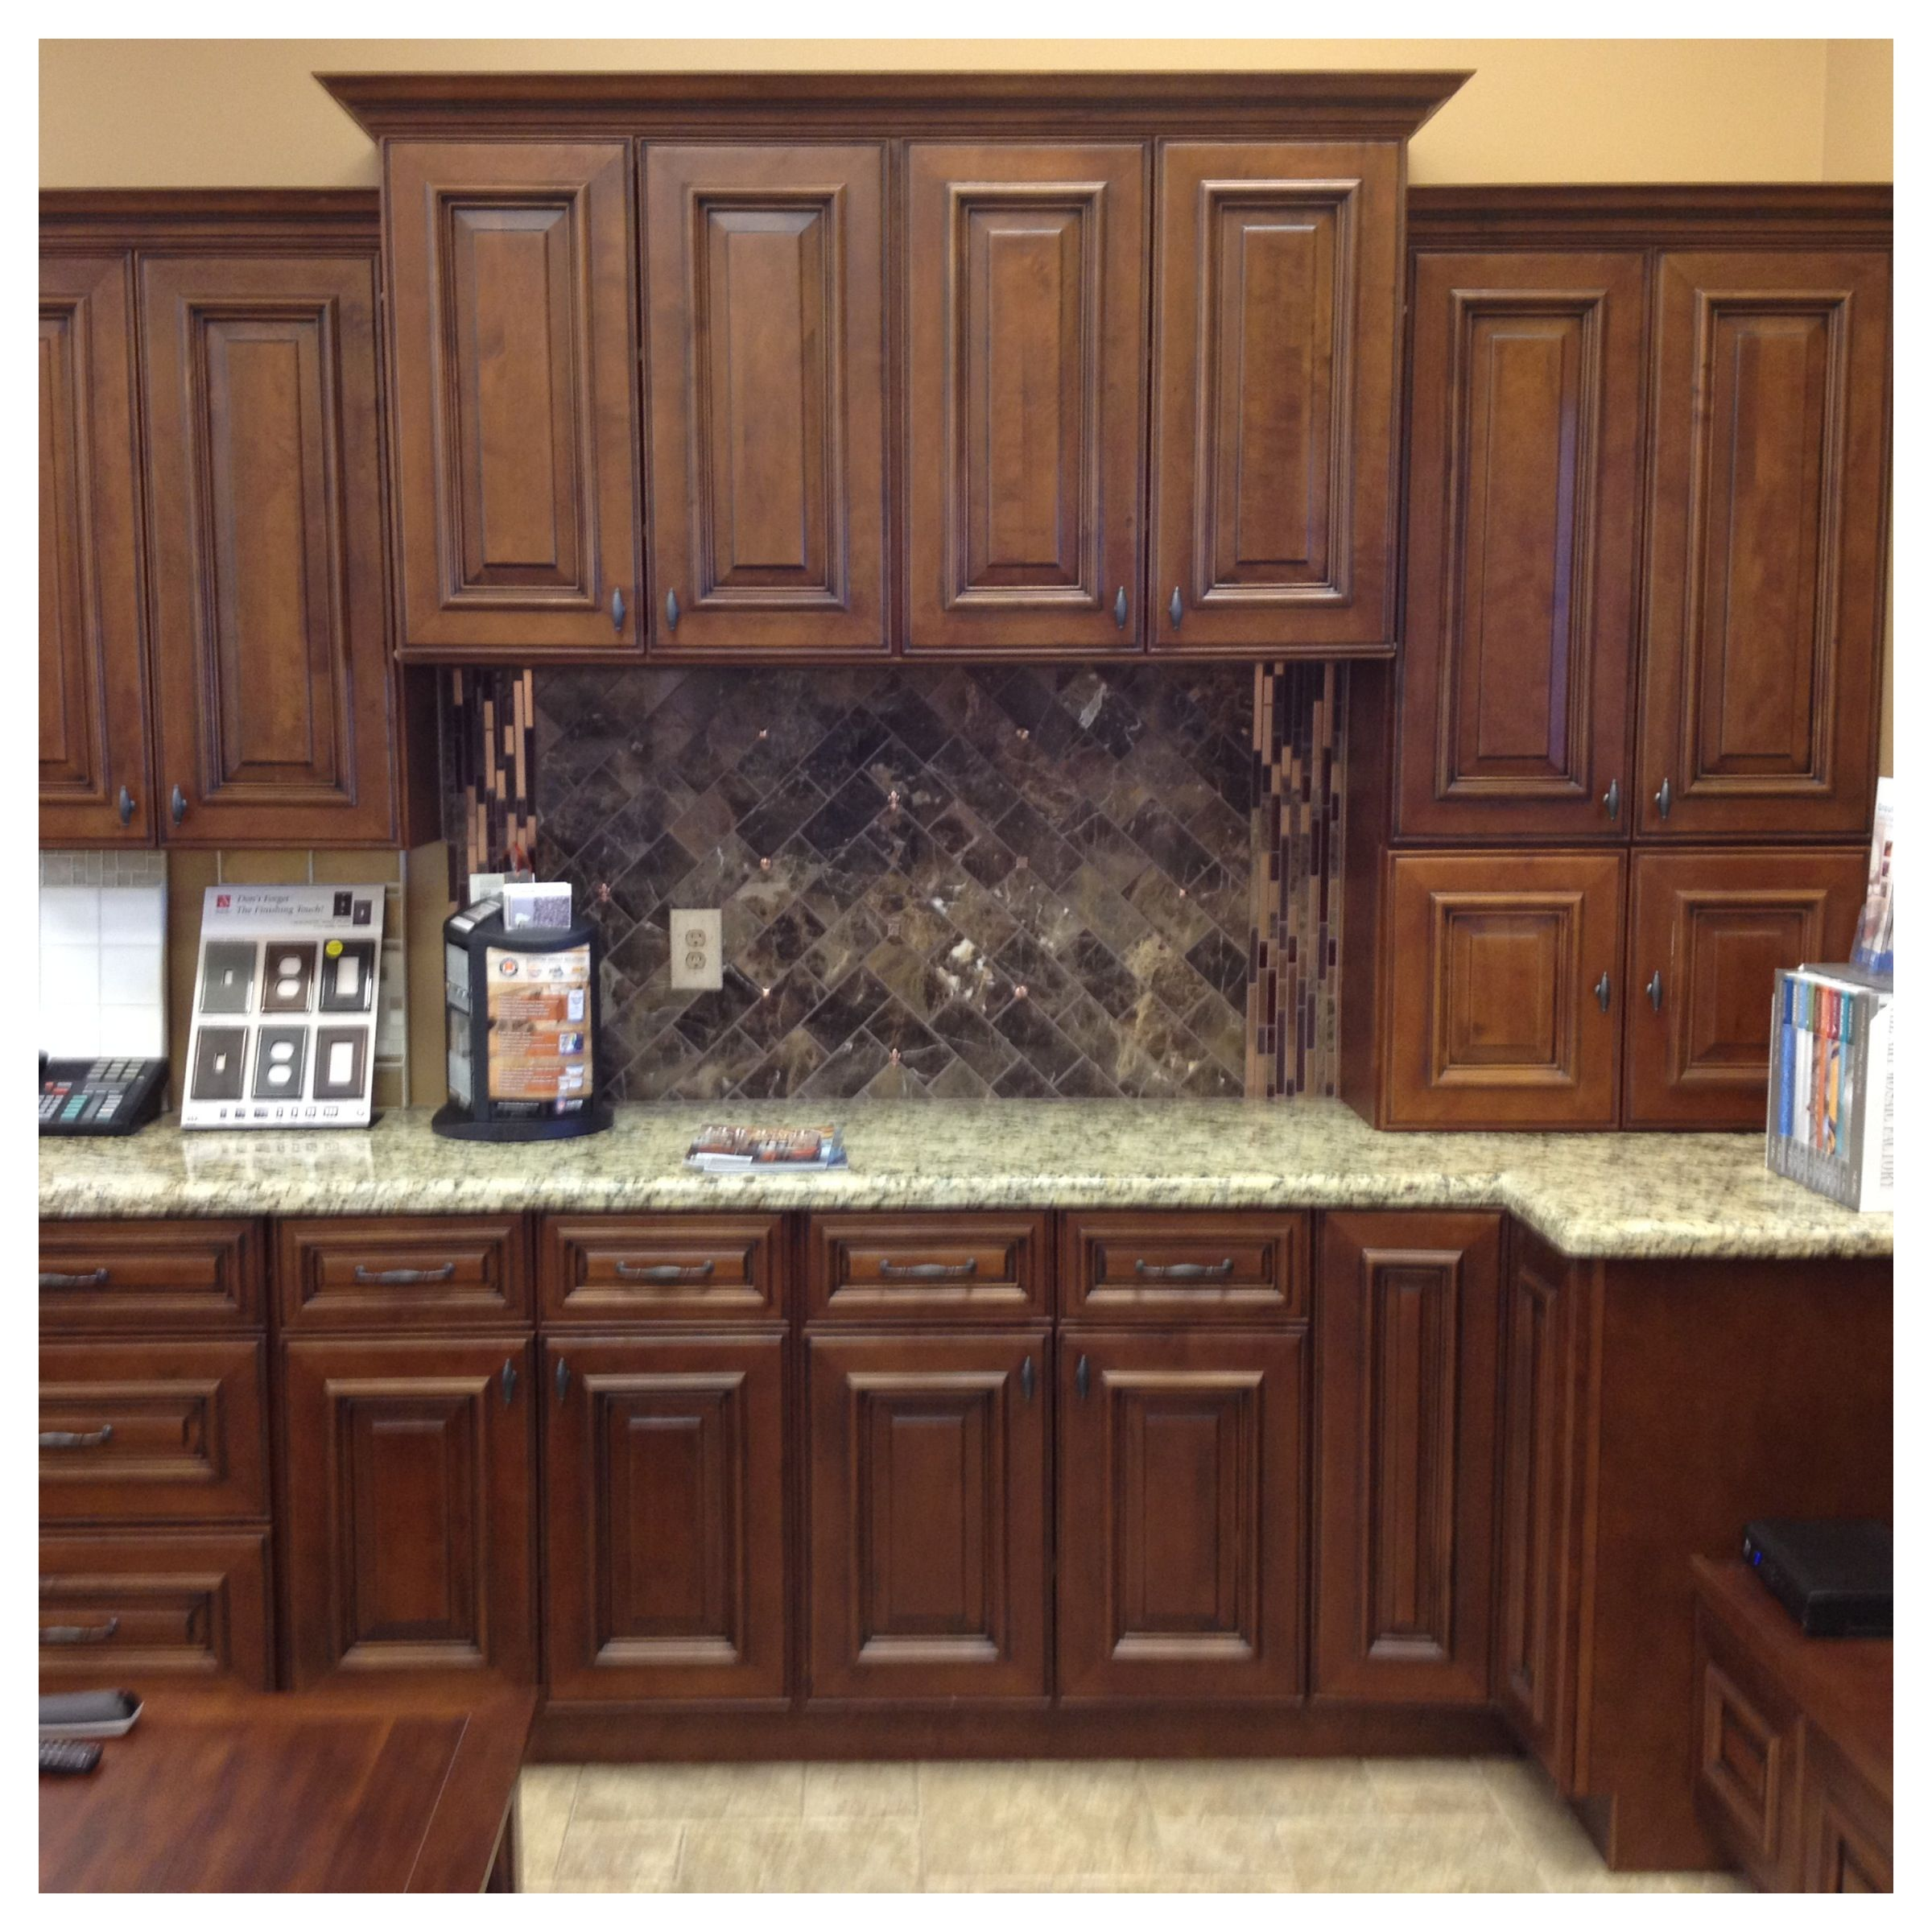 Entertainment Center Raised Panel Walnut Cabinet Style With Light Granite And Marble Backsplash Call Walnut Cabinets Cabinet Styles Entertainment Center